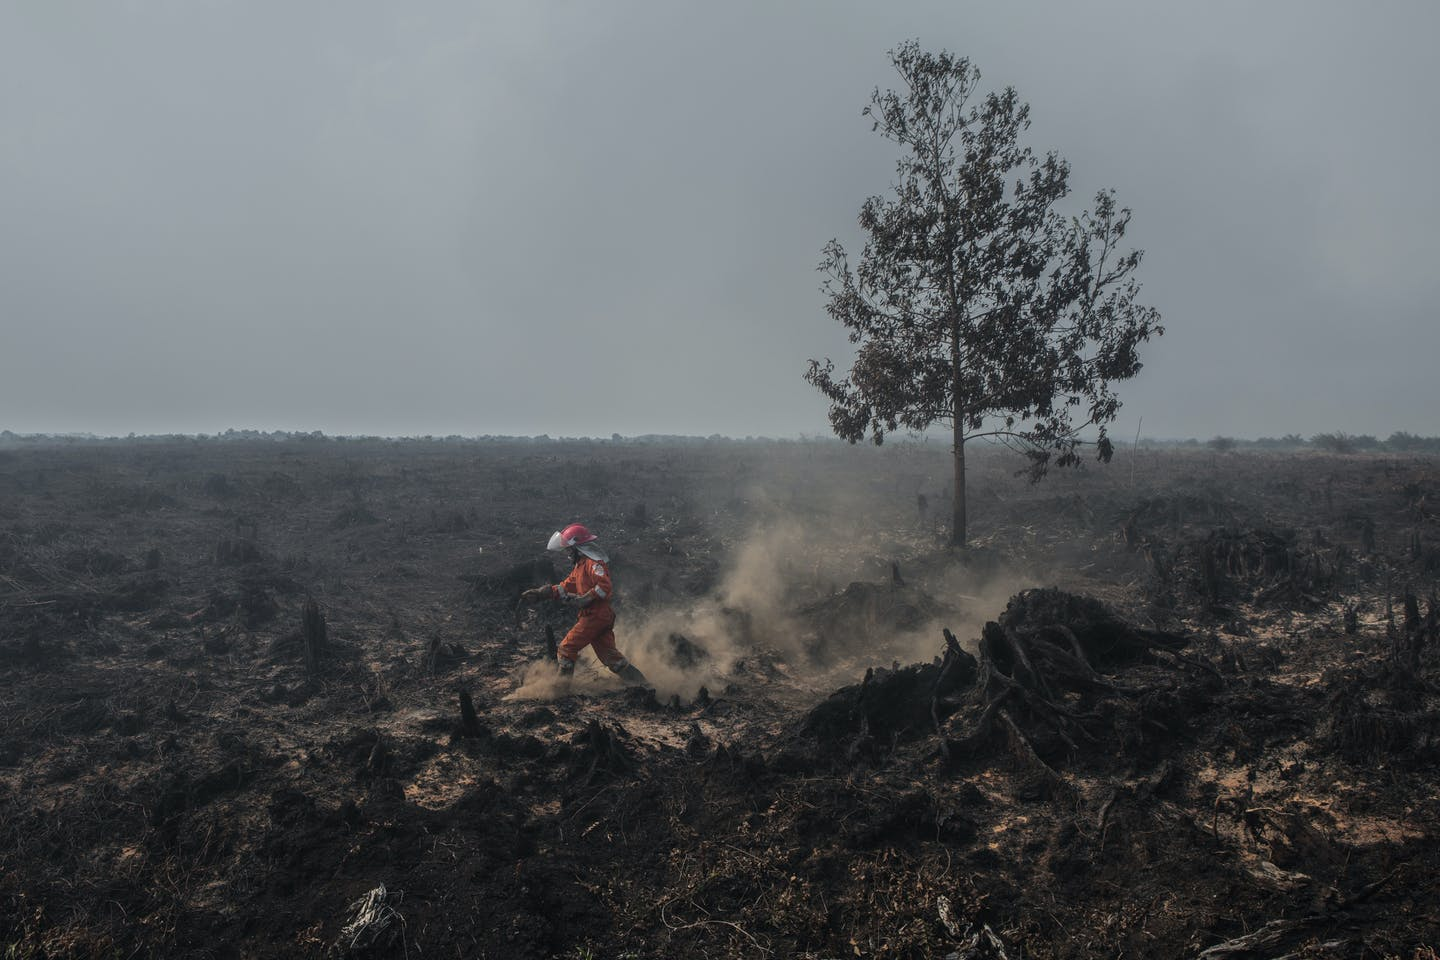 A burning peatland inside the area palm oil concession of PT Sumatera Unggul Makmur in West Kalimantan on 22 August 2018. Image: Greenpeace